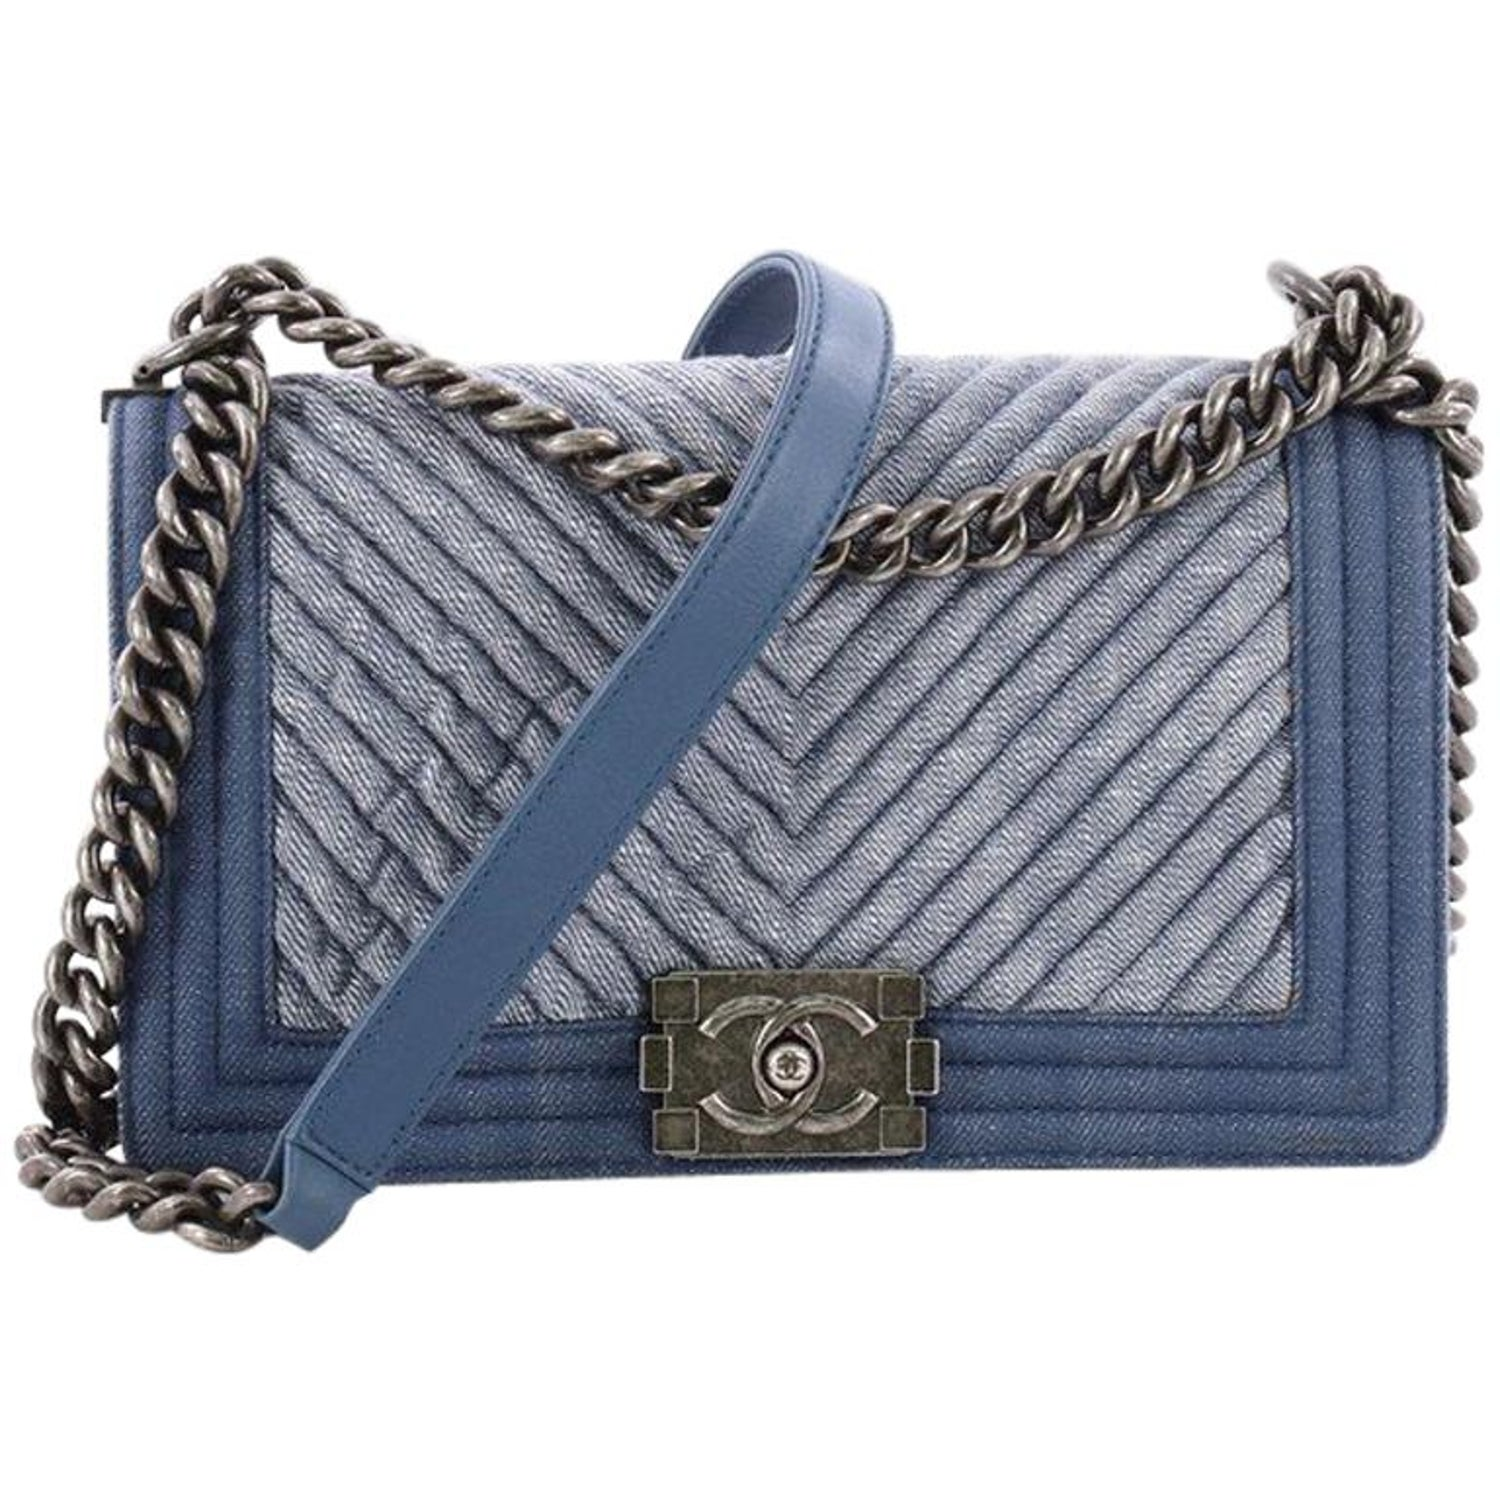 e138fcfff7493 Chanel Boy Flap Bag Chevron Denim Old Medium at 1stdibs